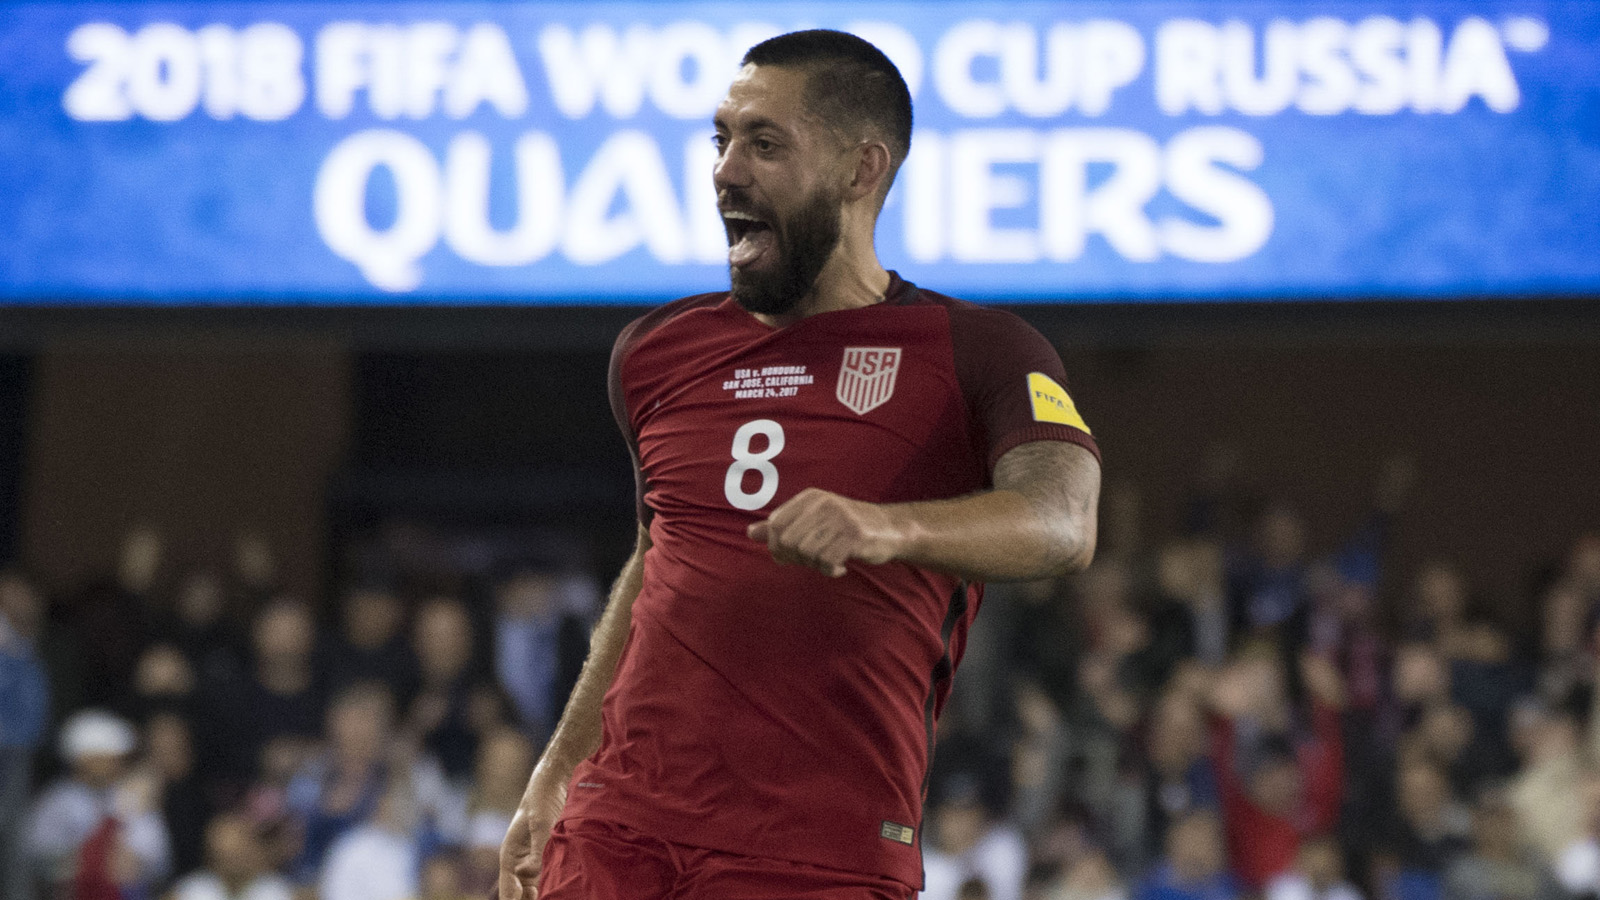 March 24, 2017; San Jose, CA, USA; United States forward Clint Dempsey (8) celebrates after scoring a hat trick against the Honduras during the second half of the Men's World Cup Soccer Qualifier at Avaya Stadium. The United States defeated Honduras 6-0. Mandatory Credit: Kyle Terada-USA TODAY Sports